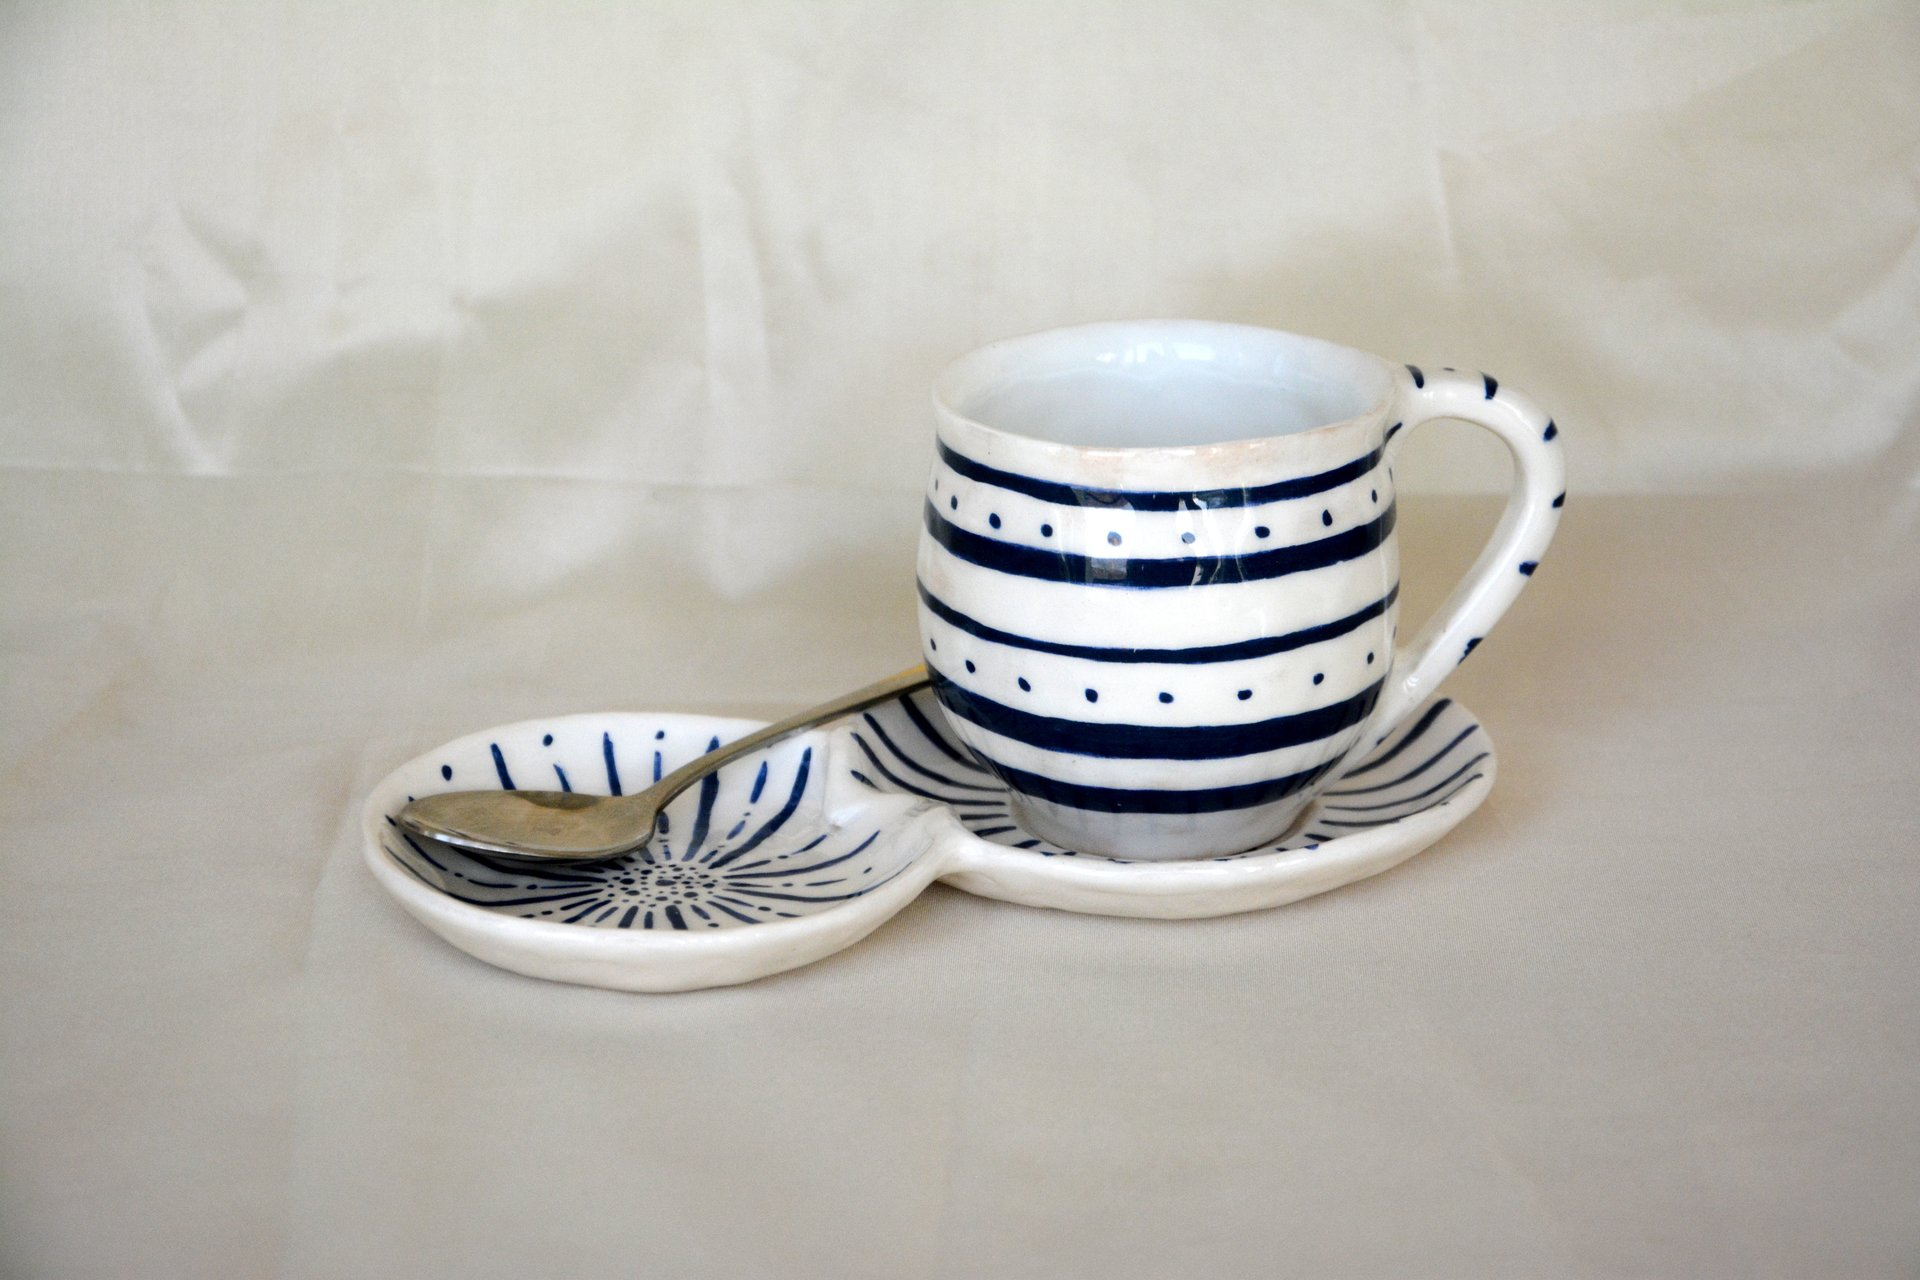 White with blue pattern Strips - Cups, glasses, mugs, height - 7,5 cm, volume - 250 ml, photo 1 of 4.